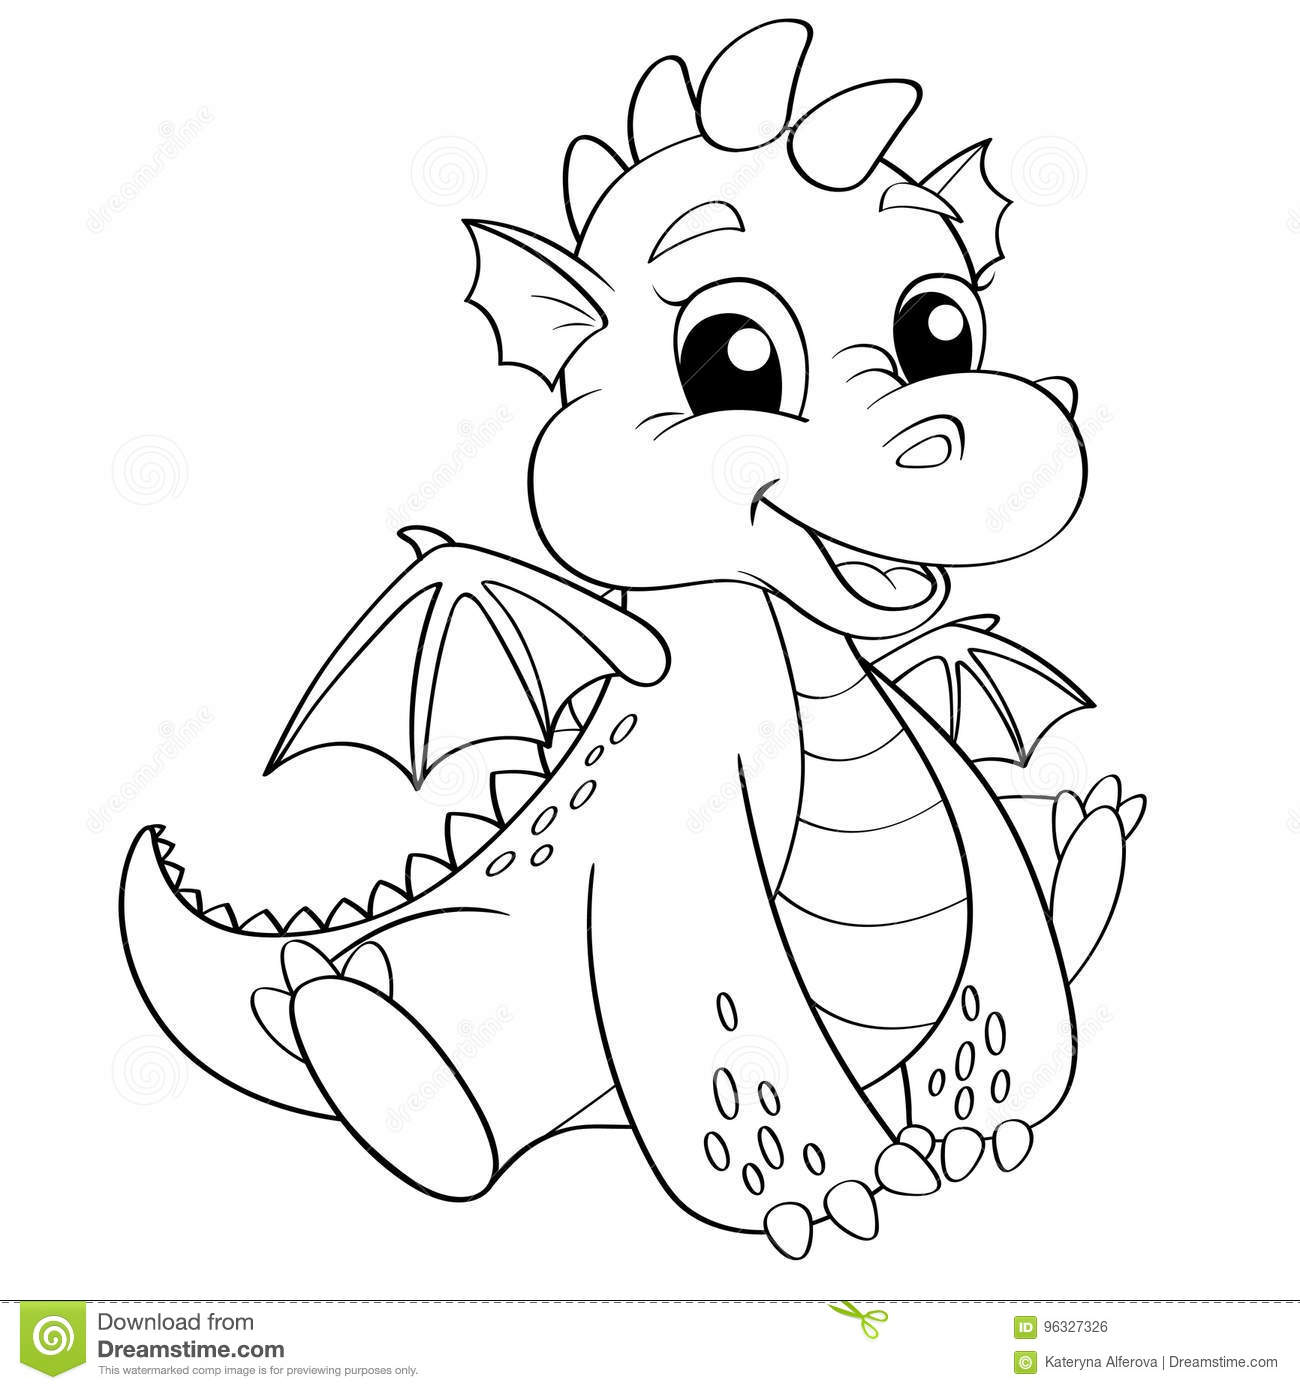 cartoon dragon coloring pages - photo#31